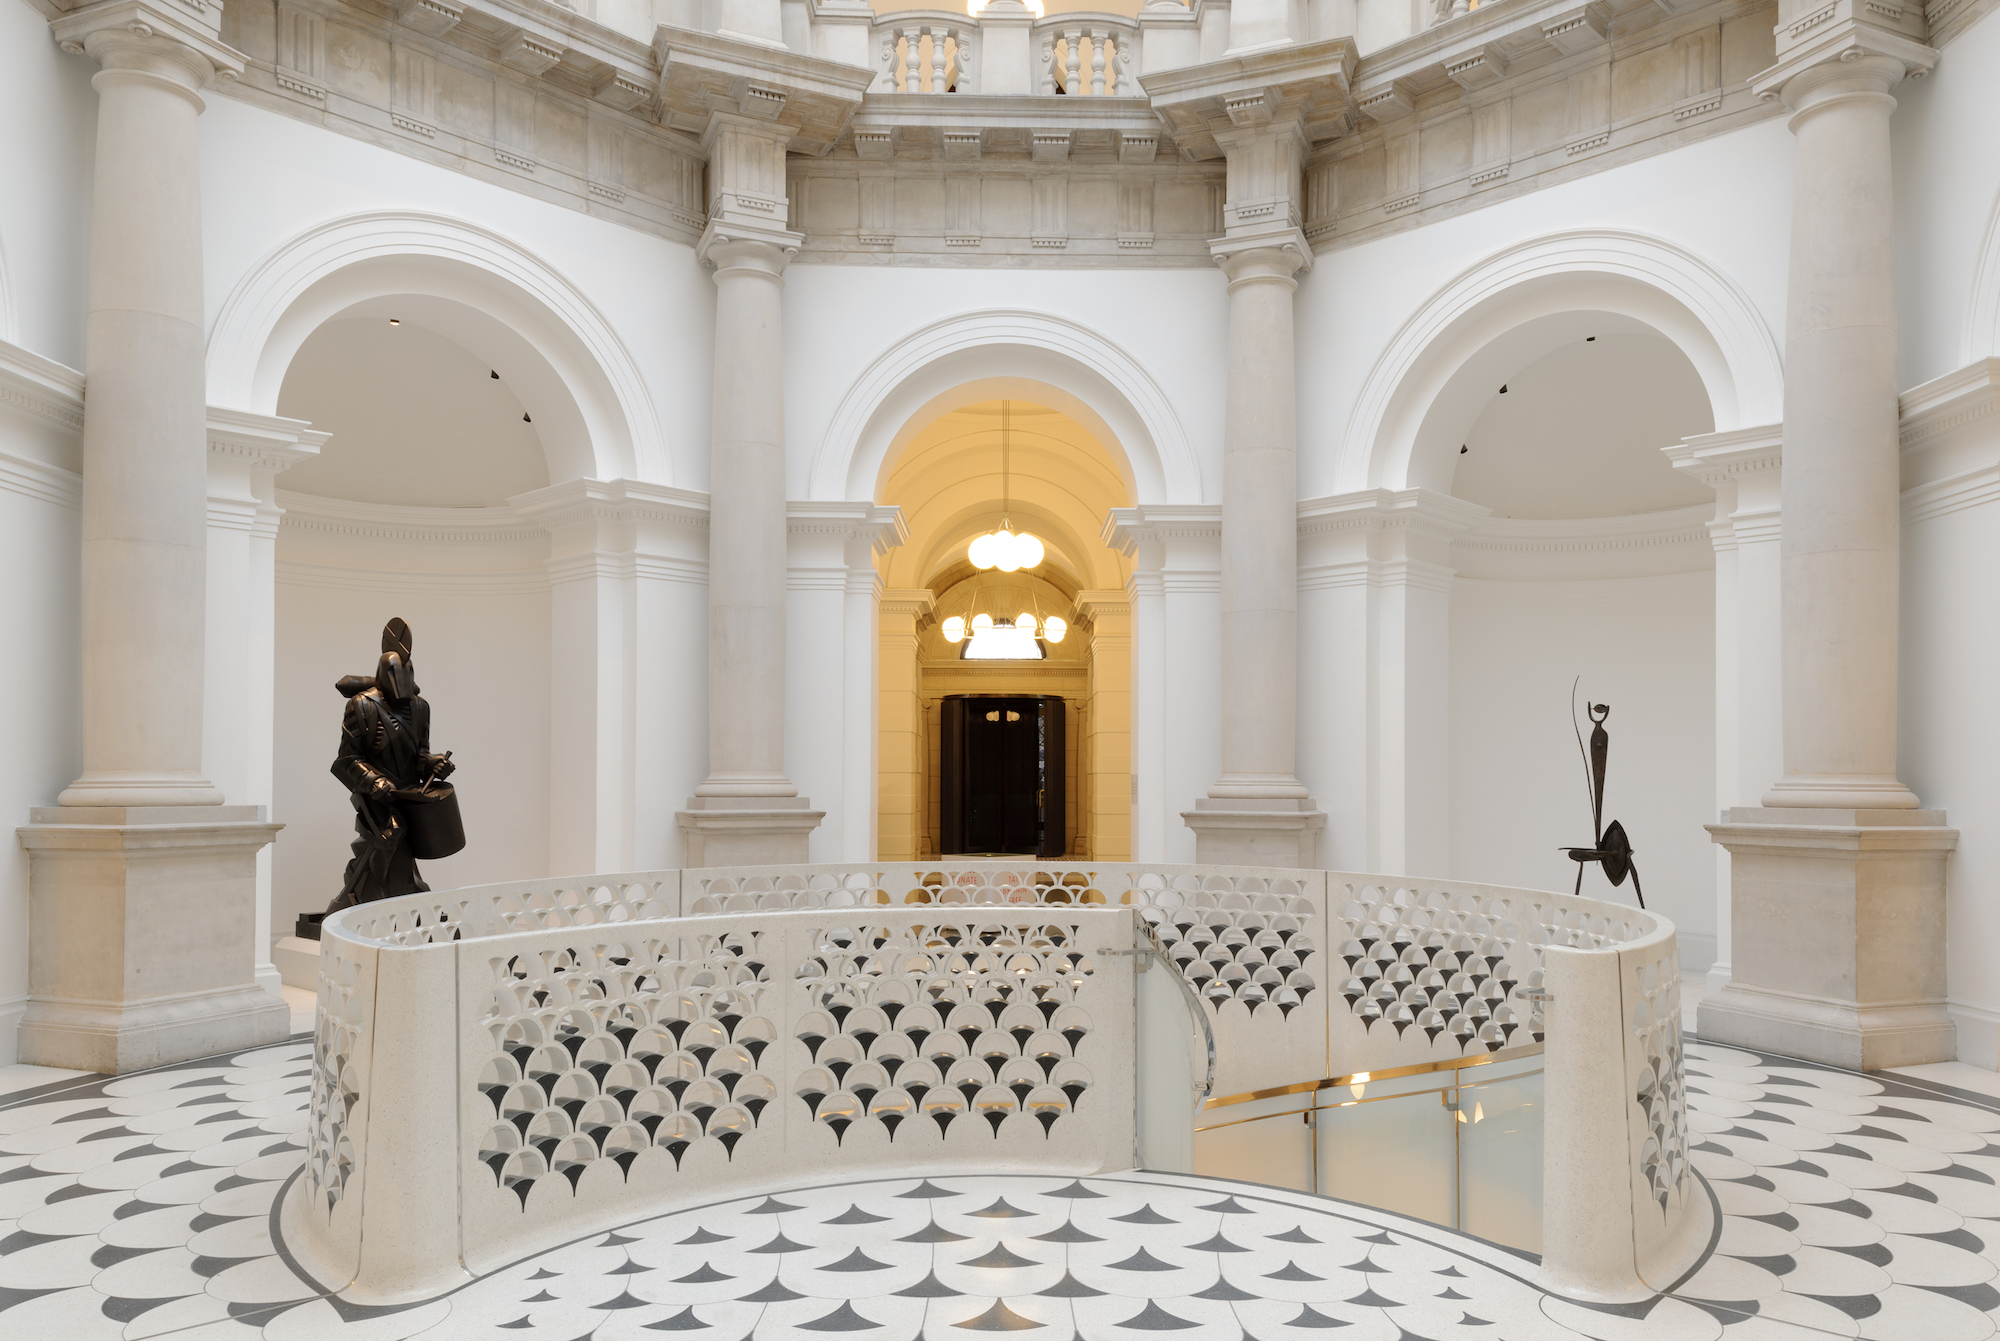 Tate Britain interior © Tate Photography